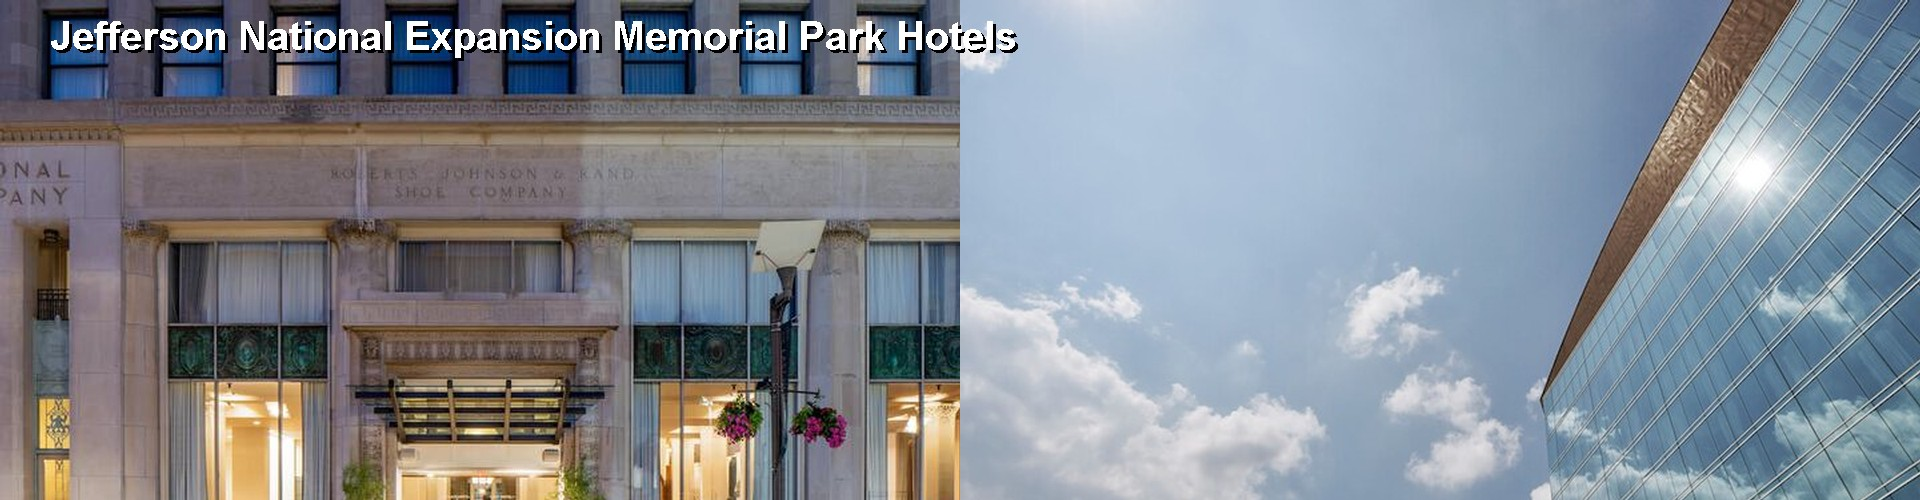 5 Best Hotels near Jefferson National Expansion Memorial Park